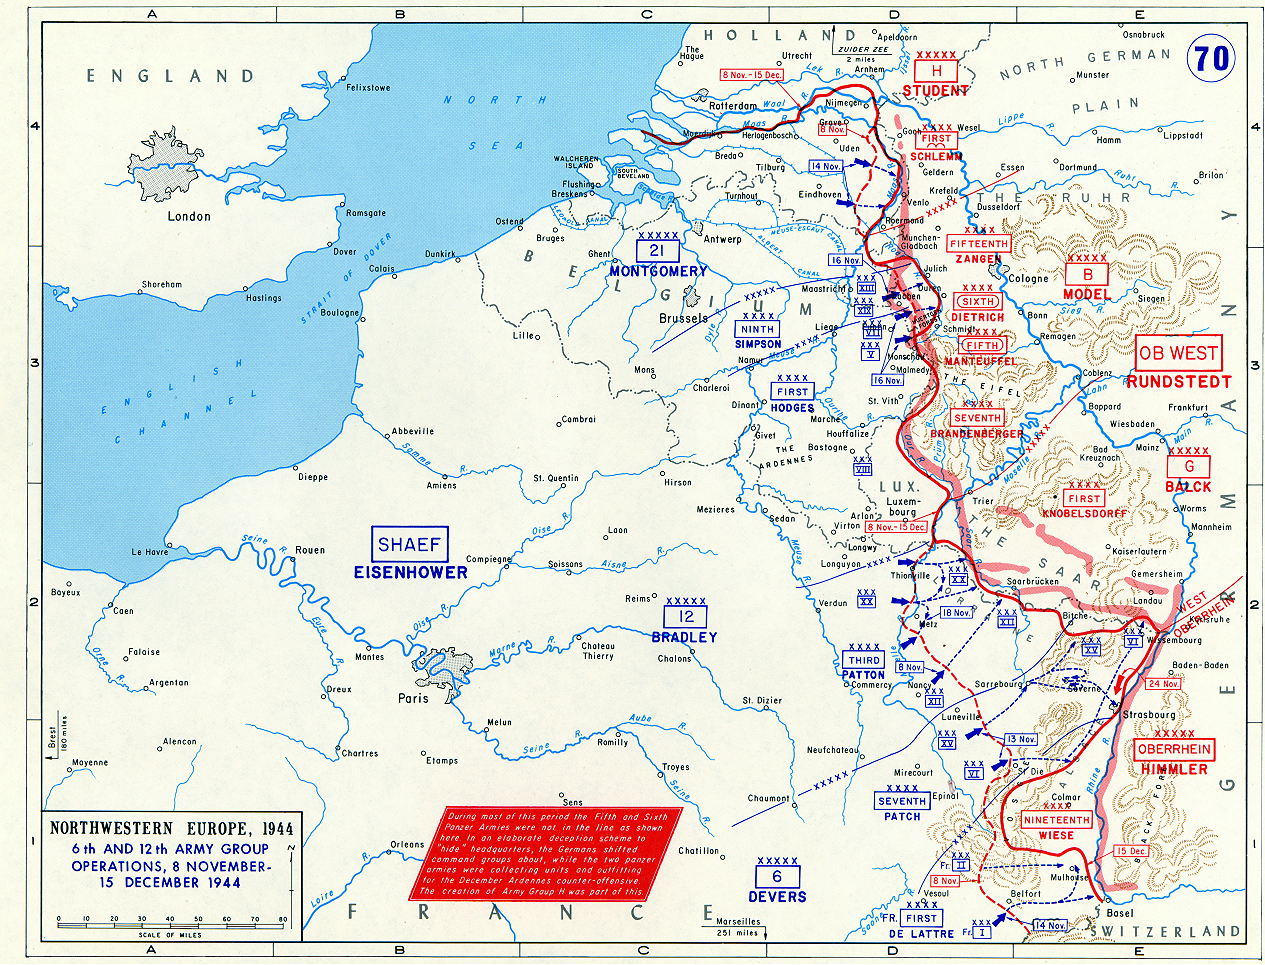 Map Of Allied Operations In Northwestern Europe NovemberDecember - Europe map 1944